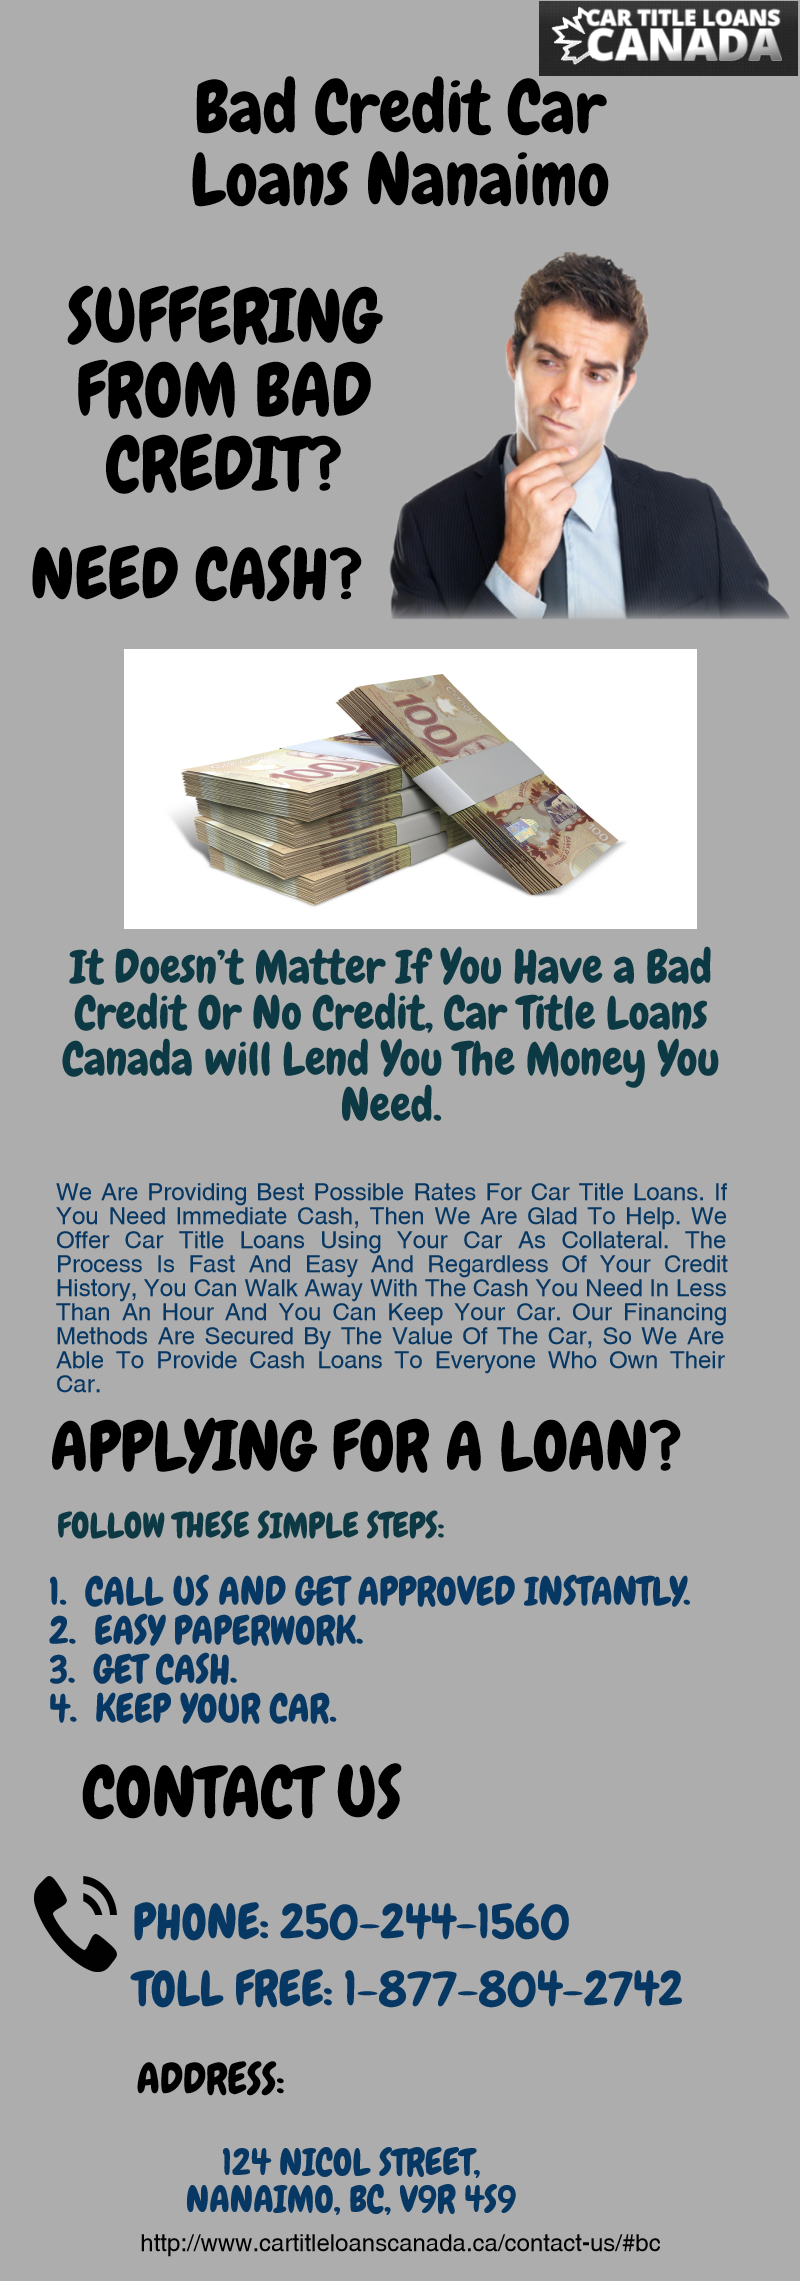 Apply for auto title loans nanaimo and get approved today whether you have bad credit history for further information contact us 1 888 517 1625 or